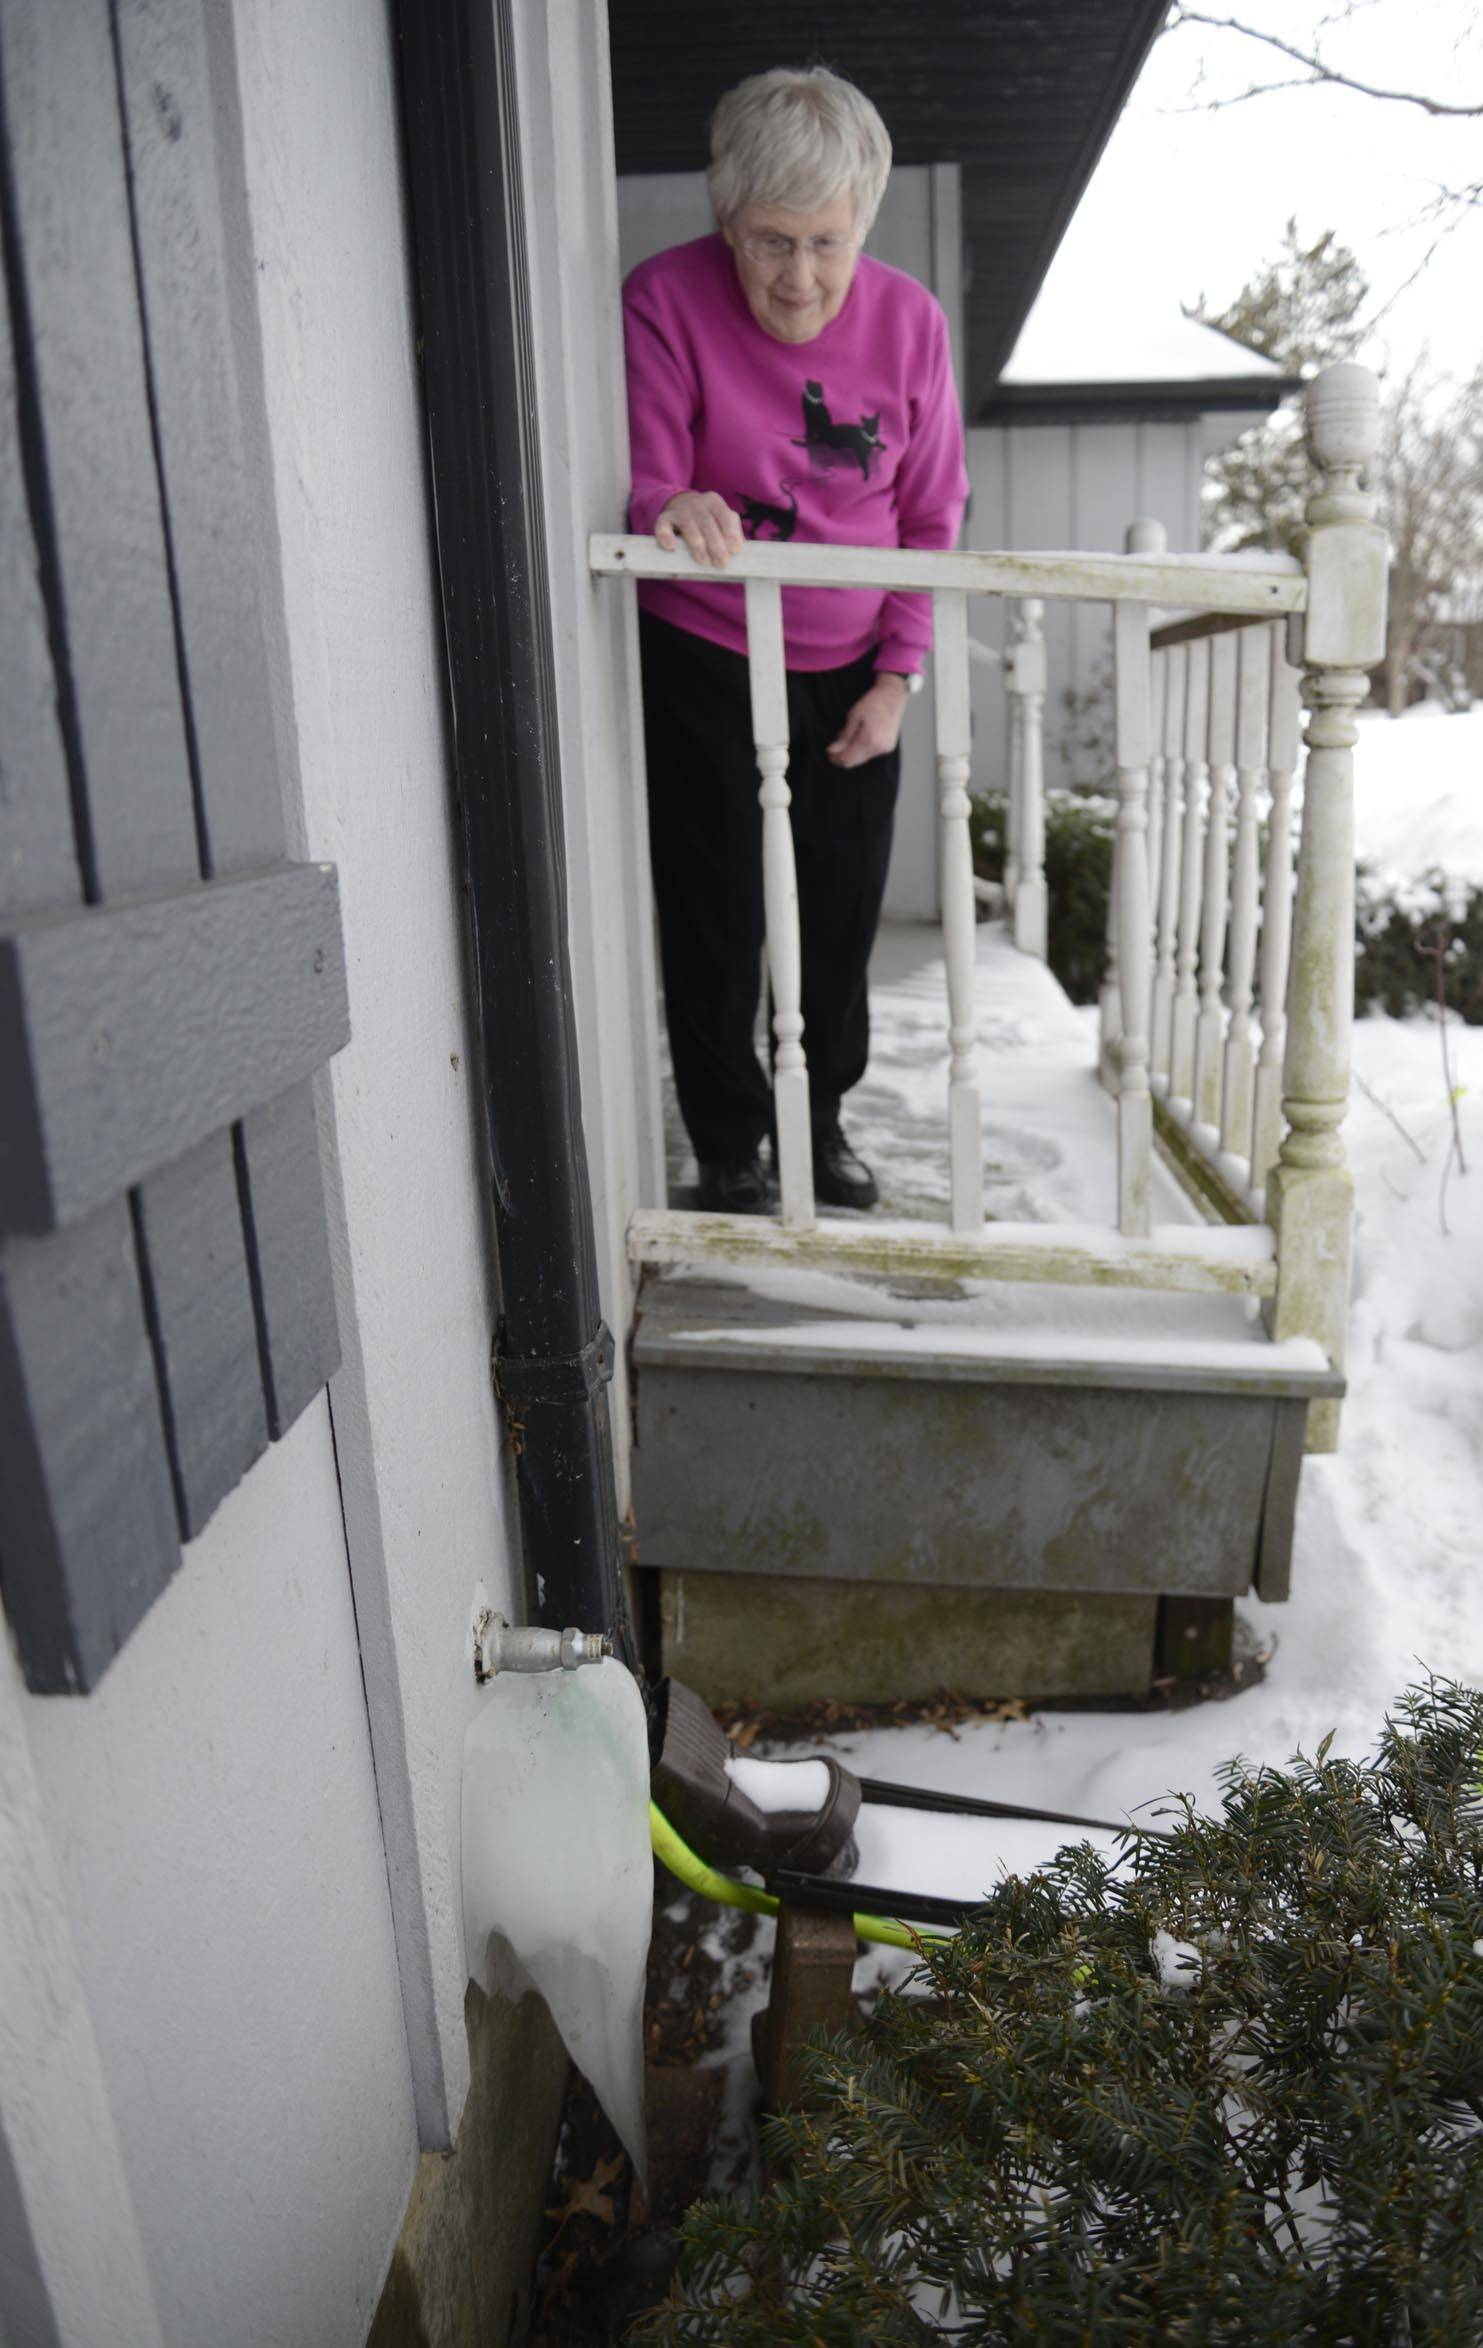 After her water supply pipe froze, the city of Elgin supplied Alice May with free water by extending a garden hose from her neighbor's house. Similar incidents have taken place at 44 businesses and homes from Jan. 6 through March 1.